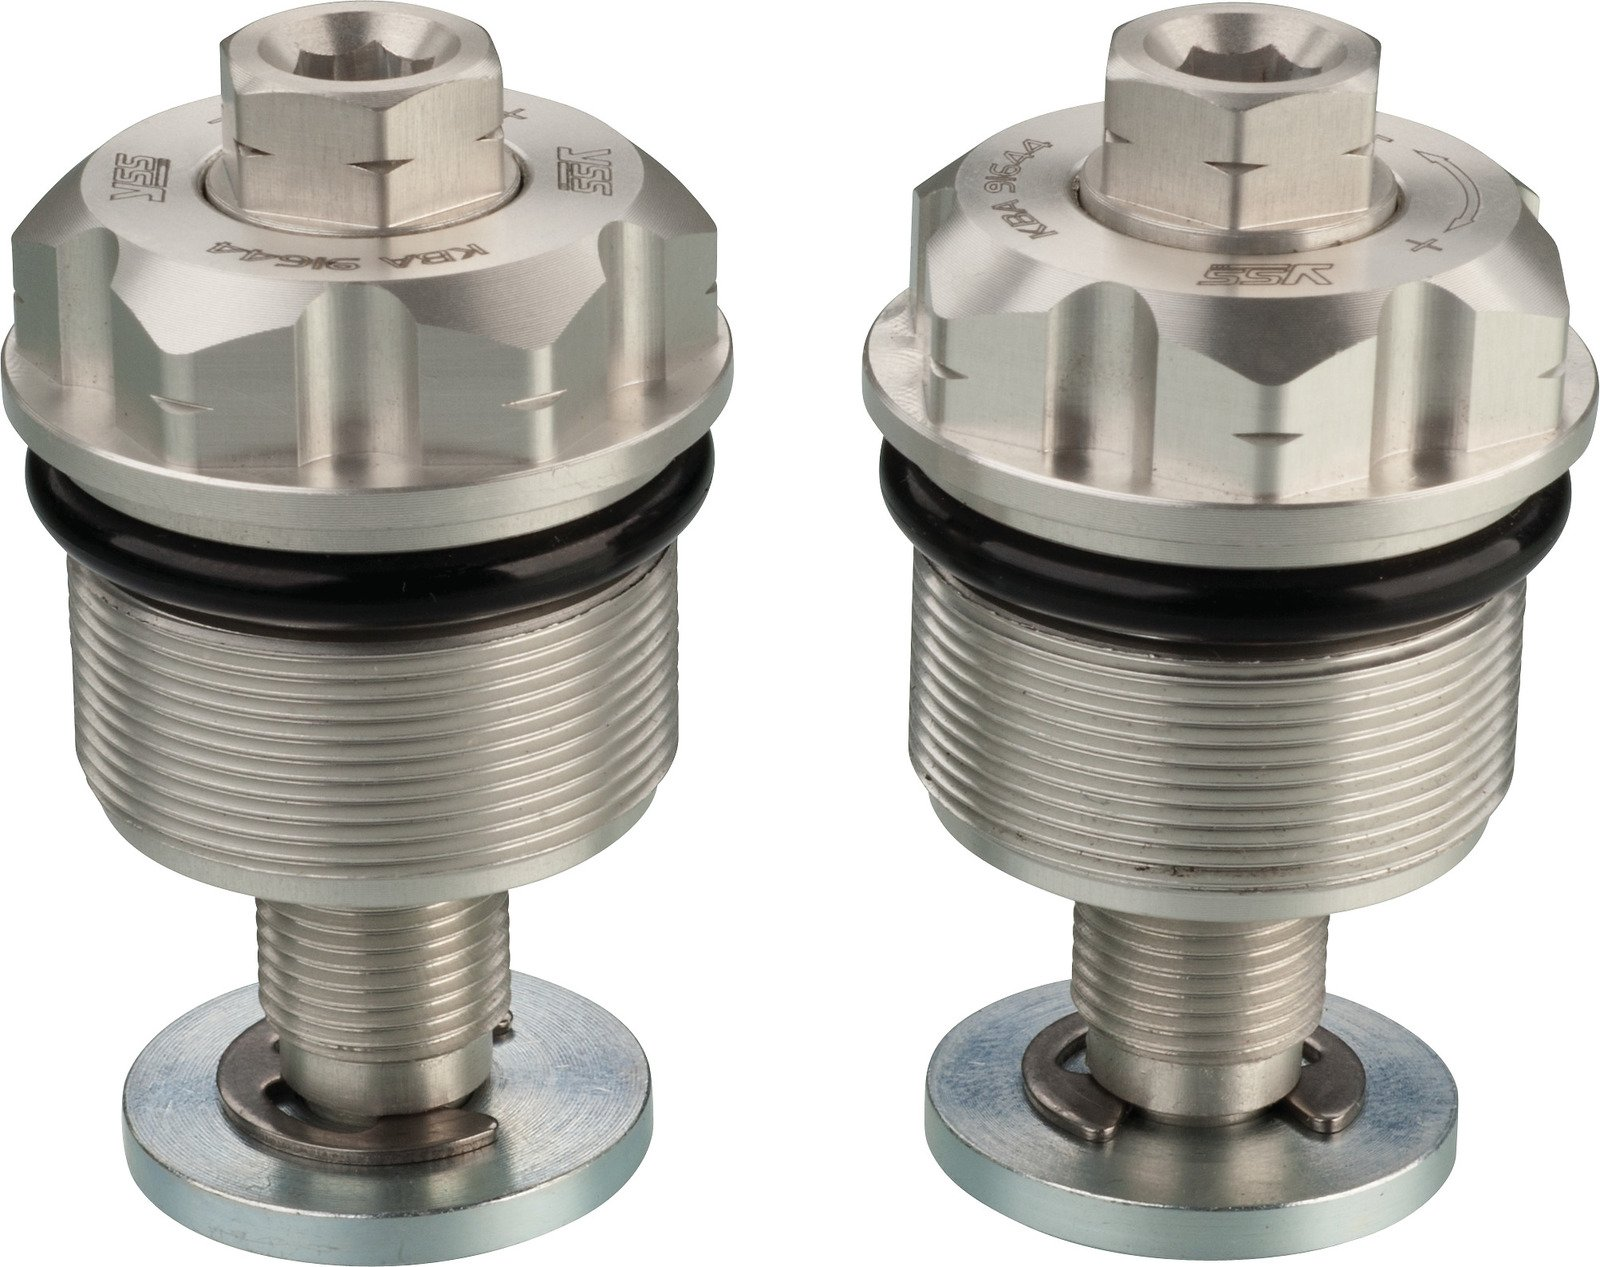 YSS Adjustable Front Fork Plugs